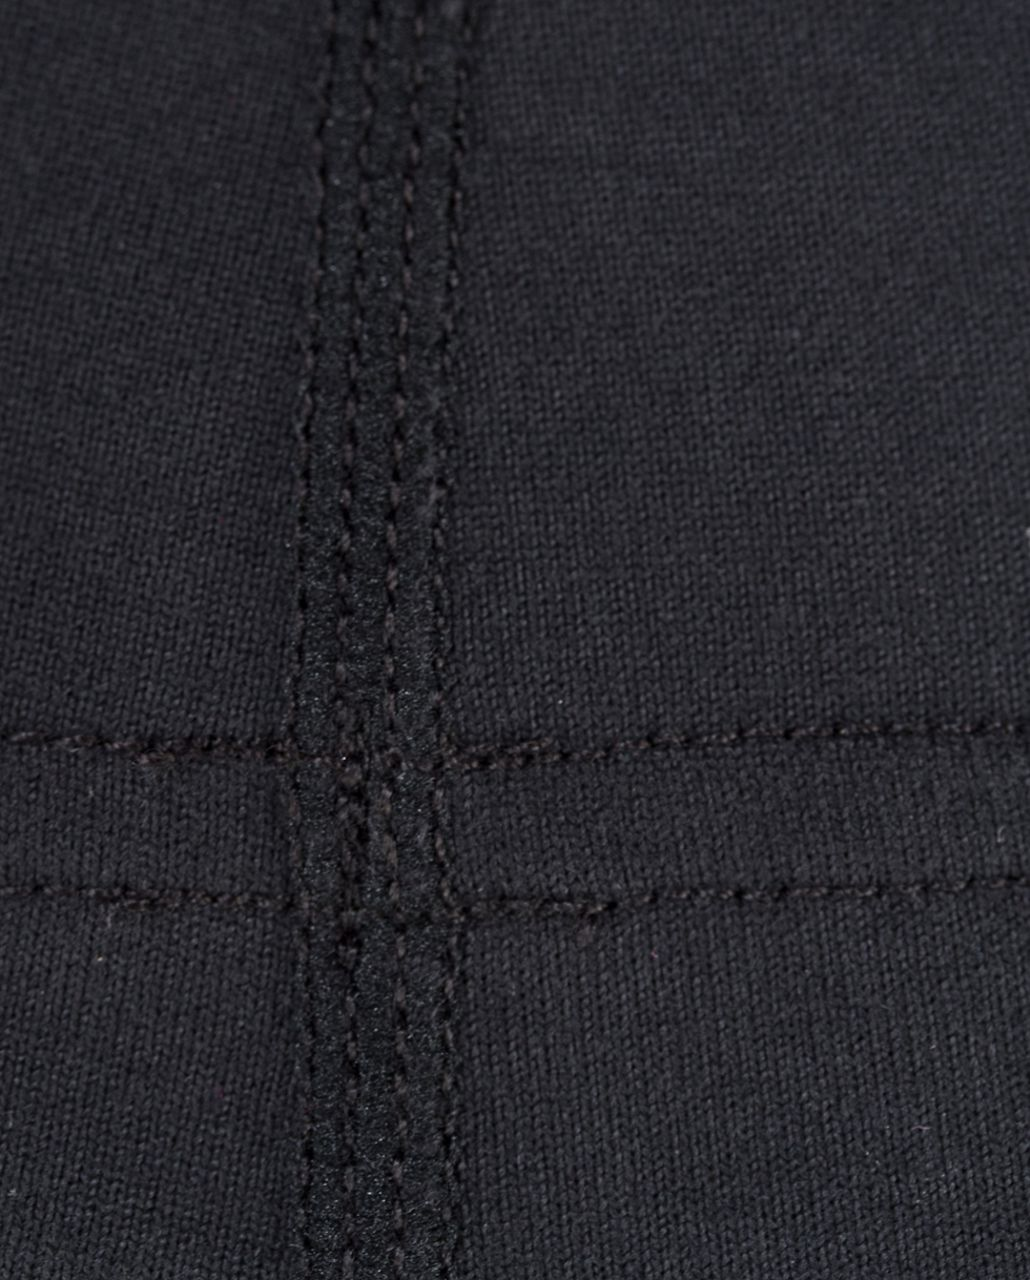 Lululemon Groove Pant (Tall) - Black /  Quilting Winter 2 /  Quilting Winter 2